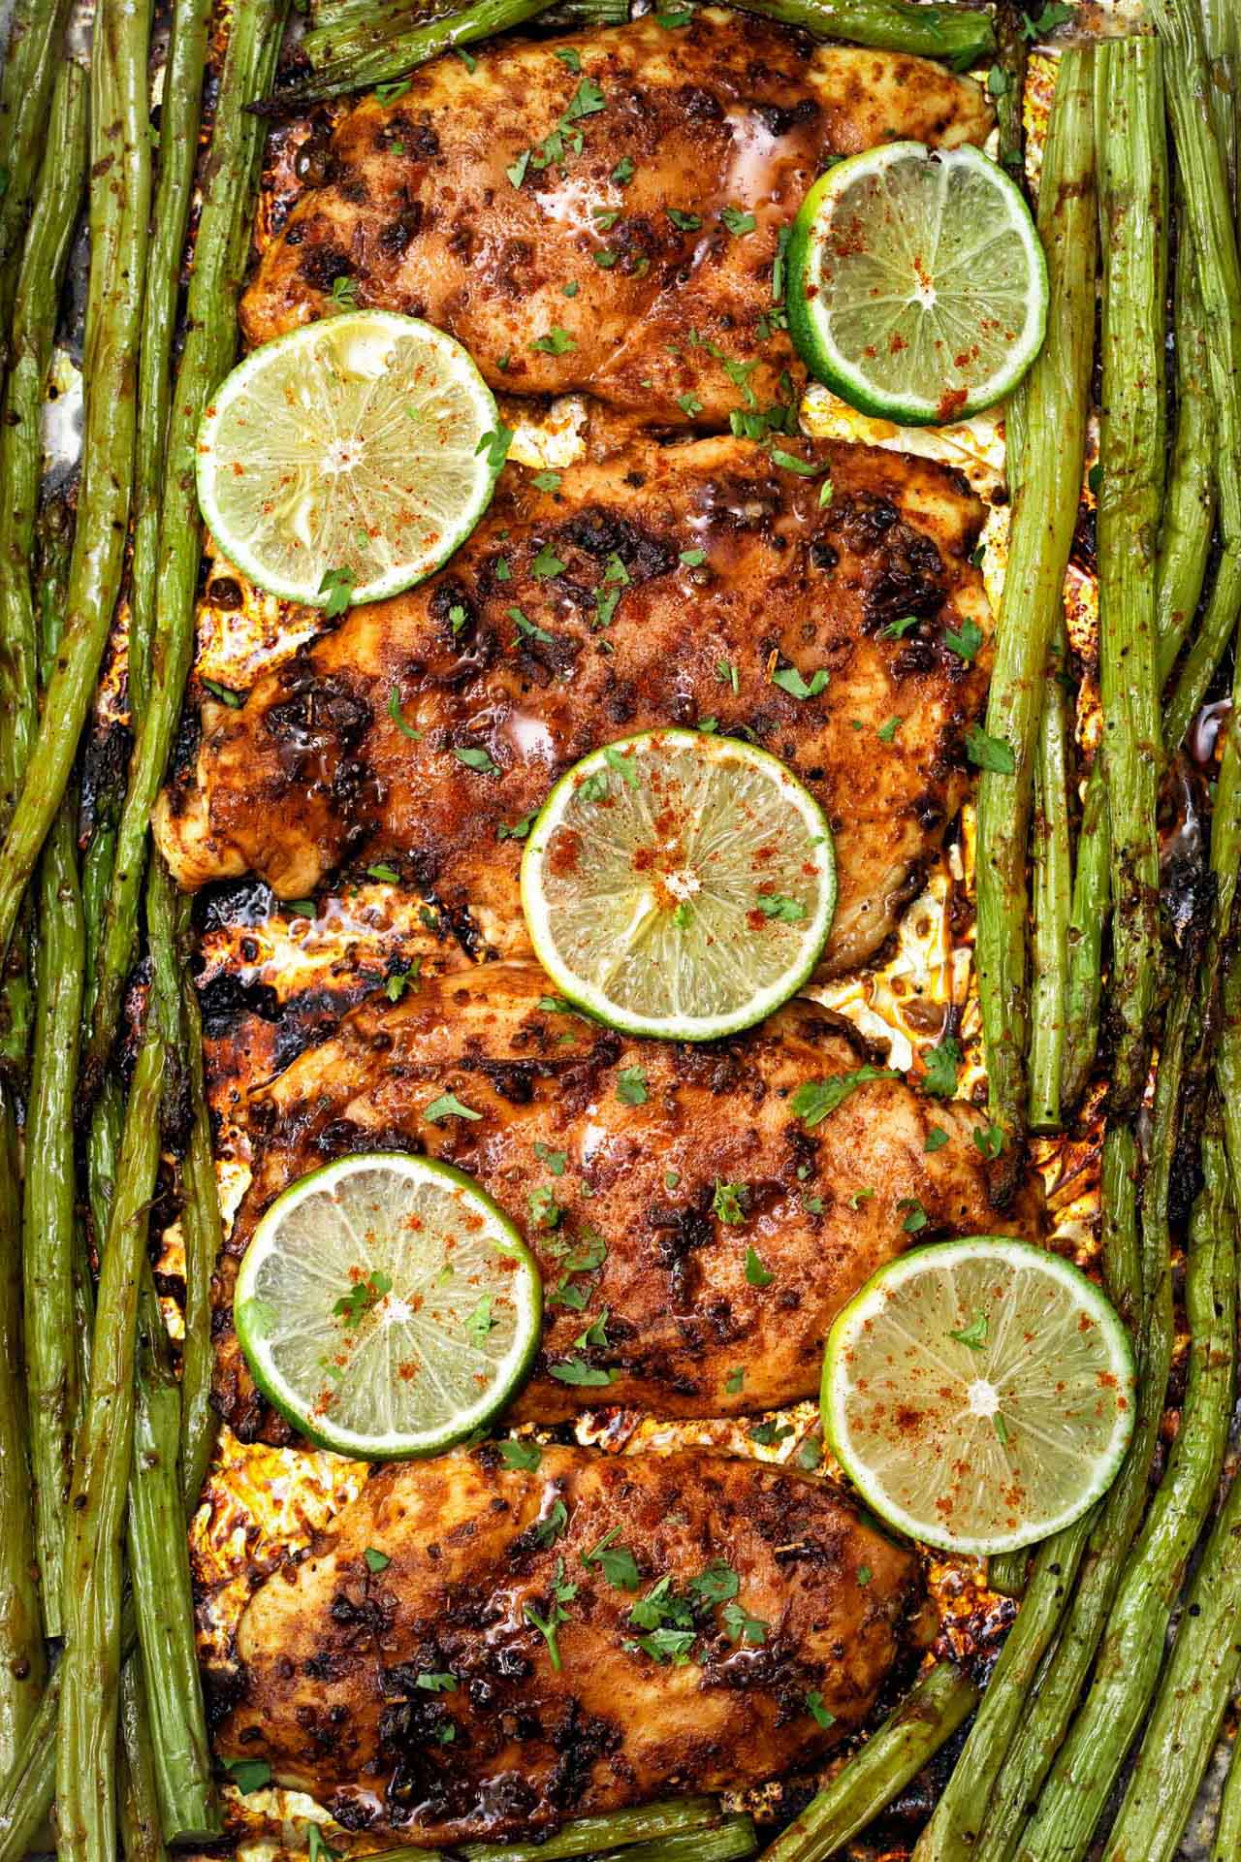 Oven Baked Chicken Breasts Recipe - Thrive Global - chicken recipes diet